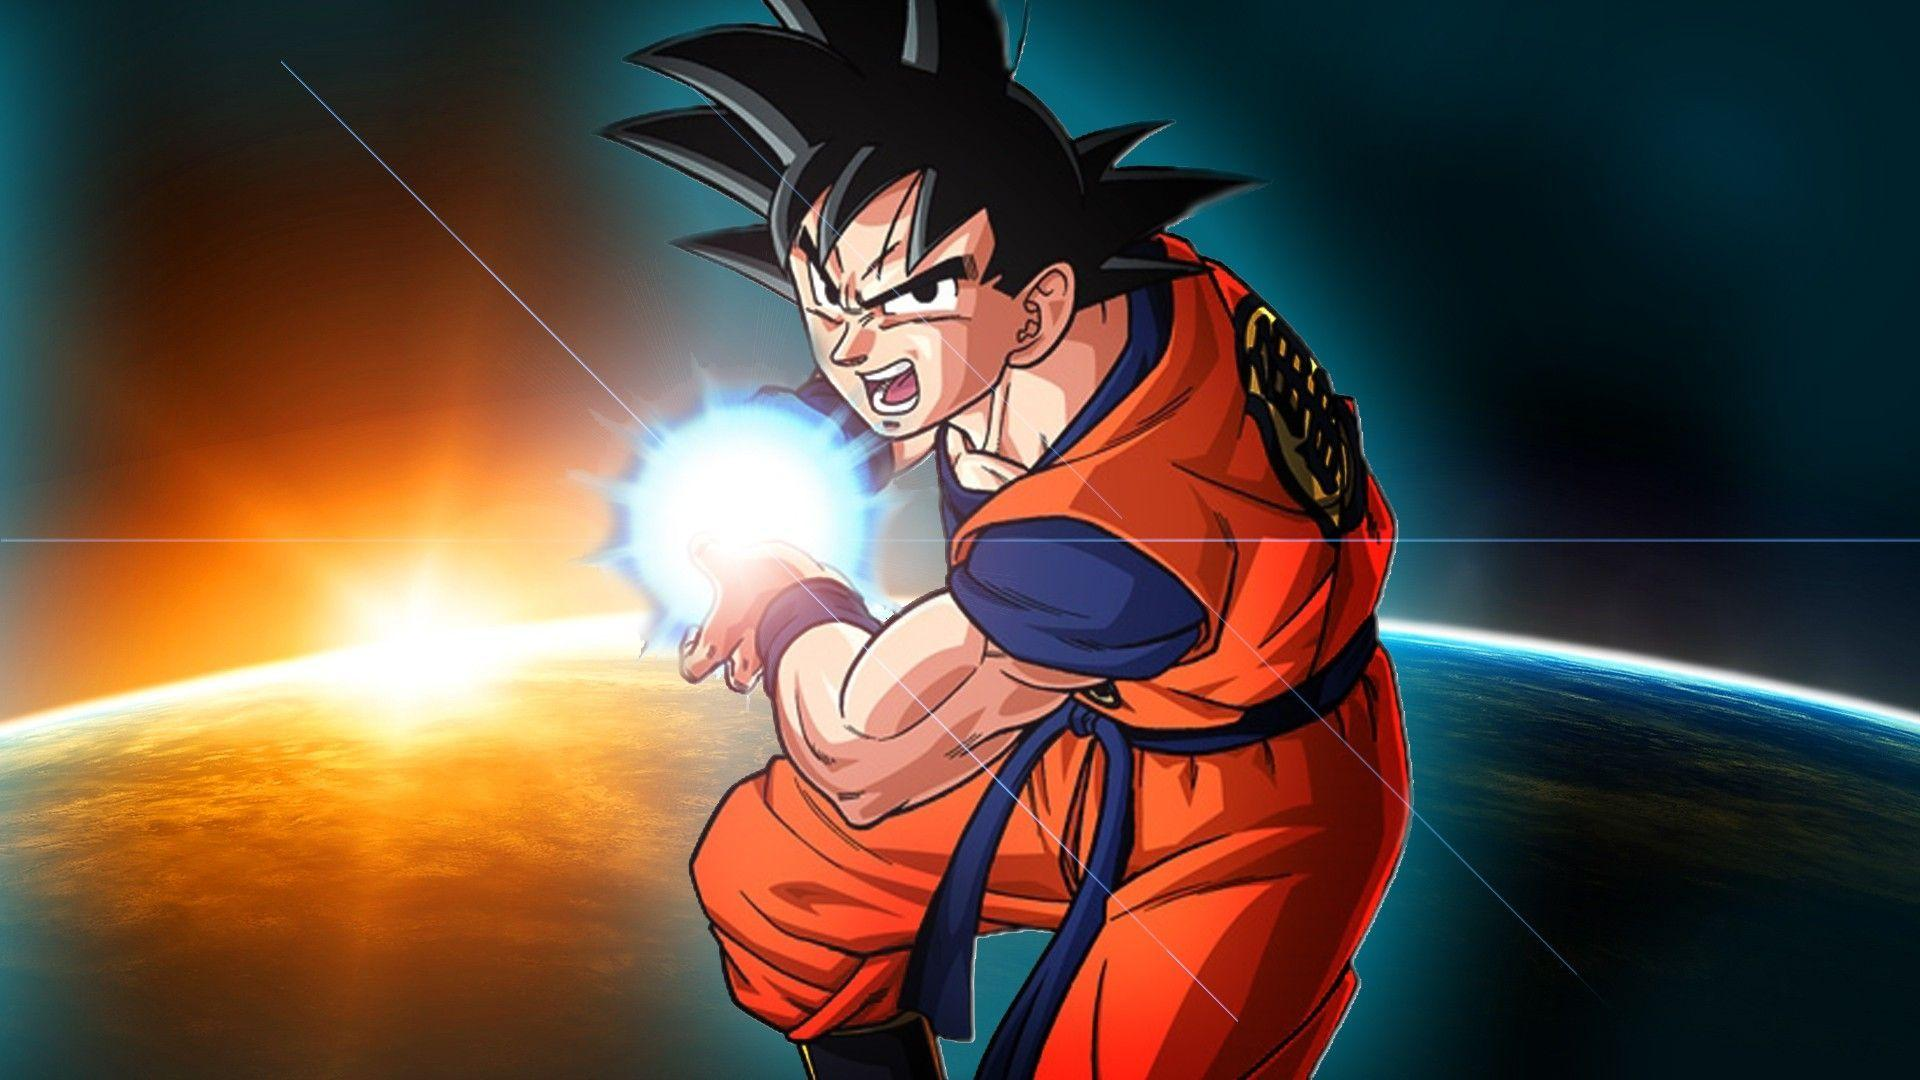 Goku 1920x1080 Posted By Zoey Sellers